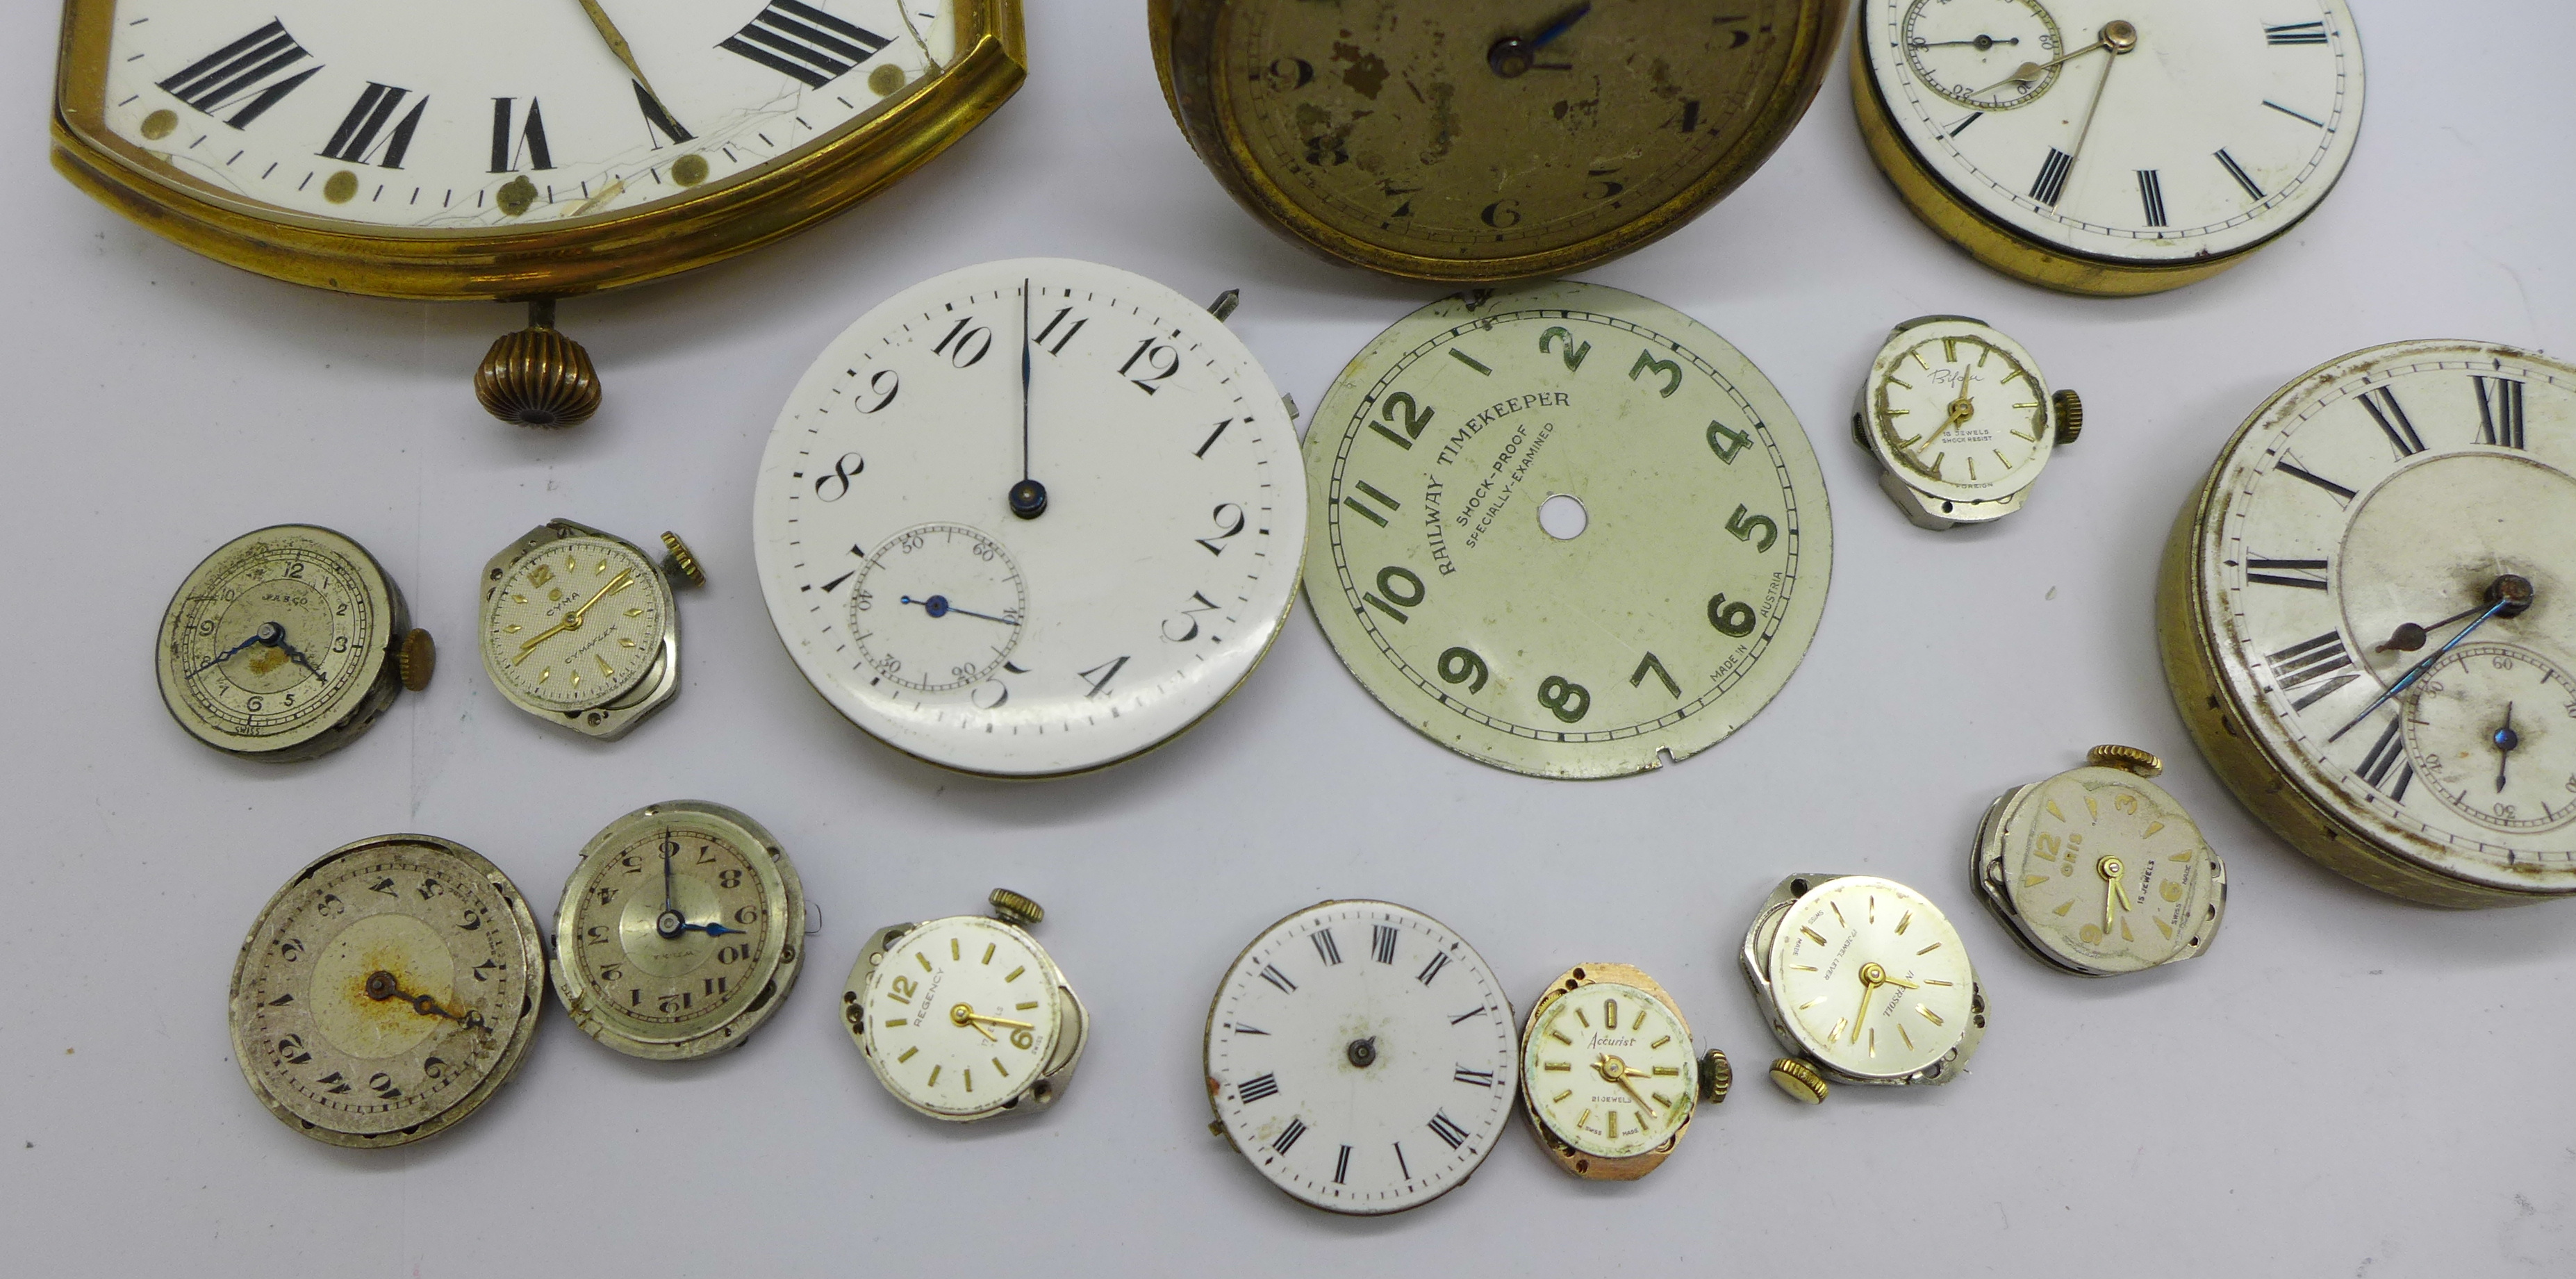 A clock movement, pocket watch movements and wristwatch movements - Image 3 of 6